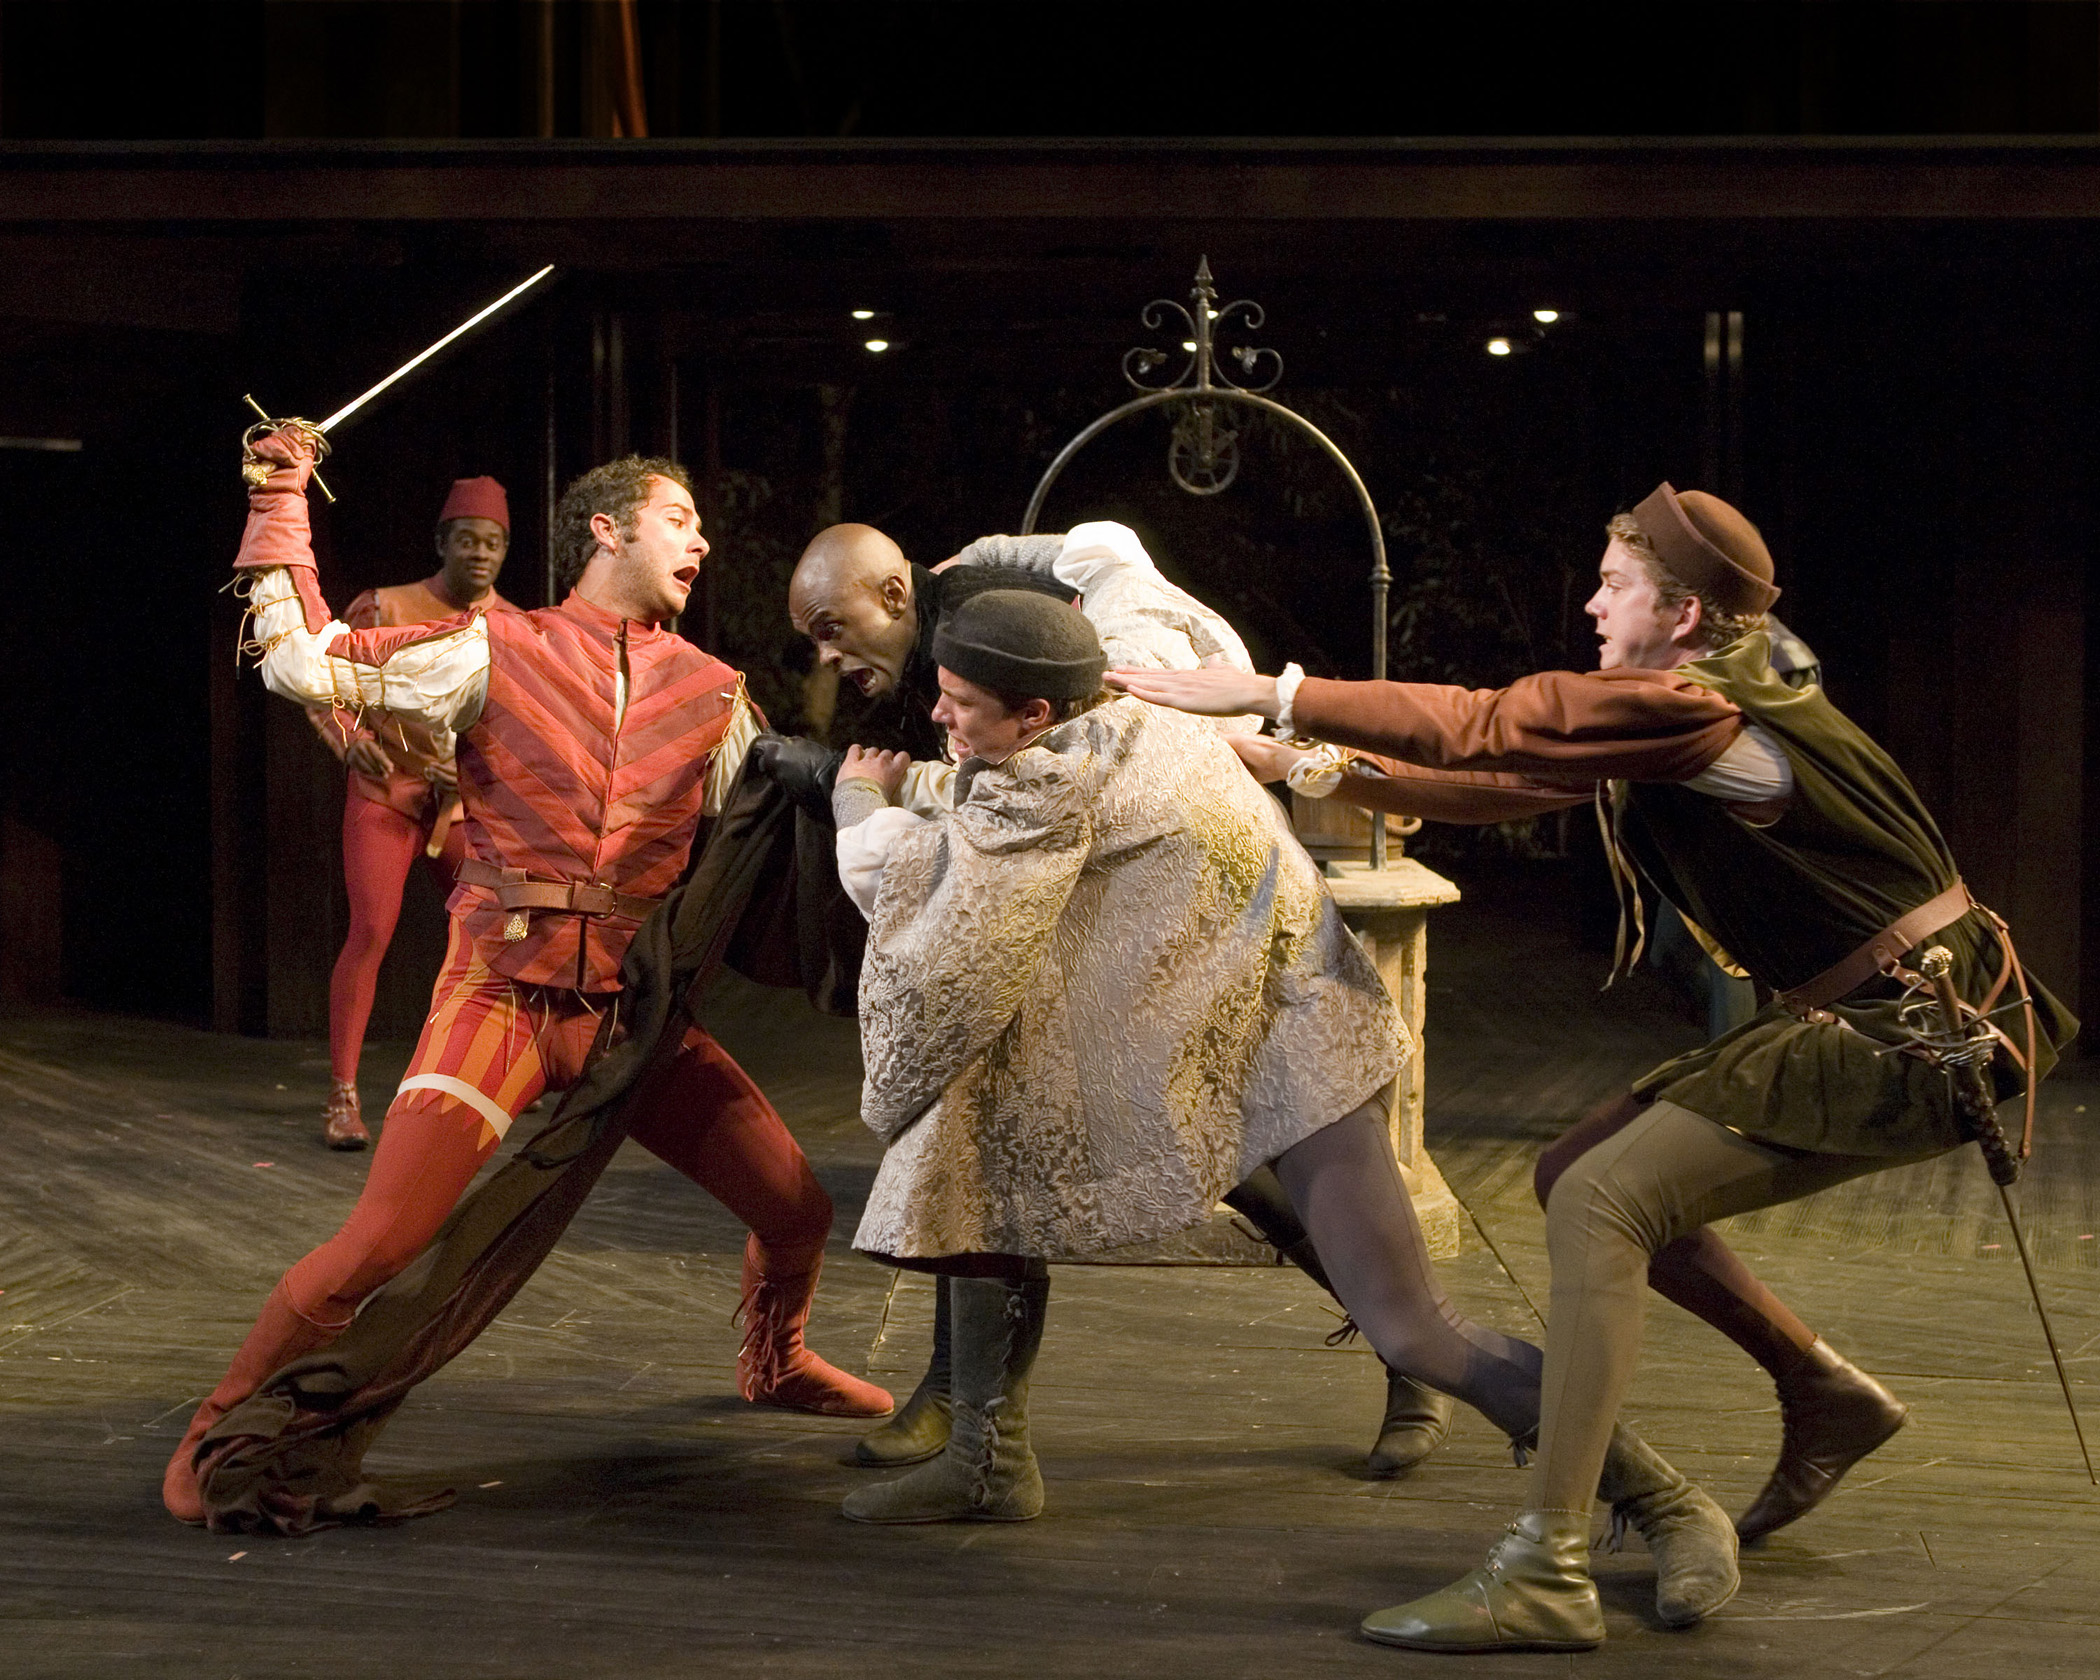 romeo killing tybalt essay This essay romeo and juliet by william shakespeare and other 63,000+ term papers, college essay examples when word got out to juliet about romeo killing tybalt.